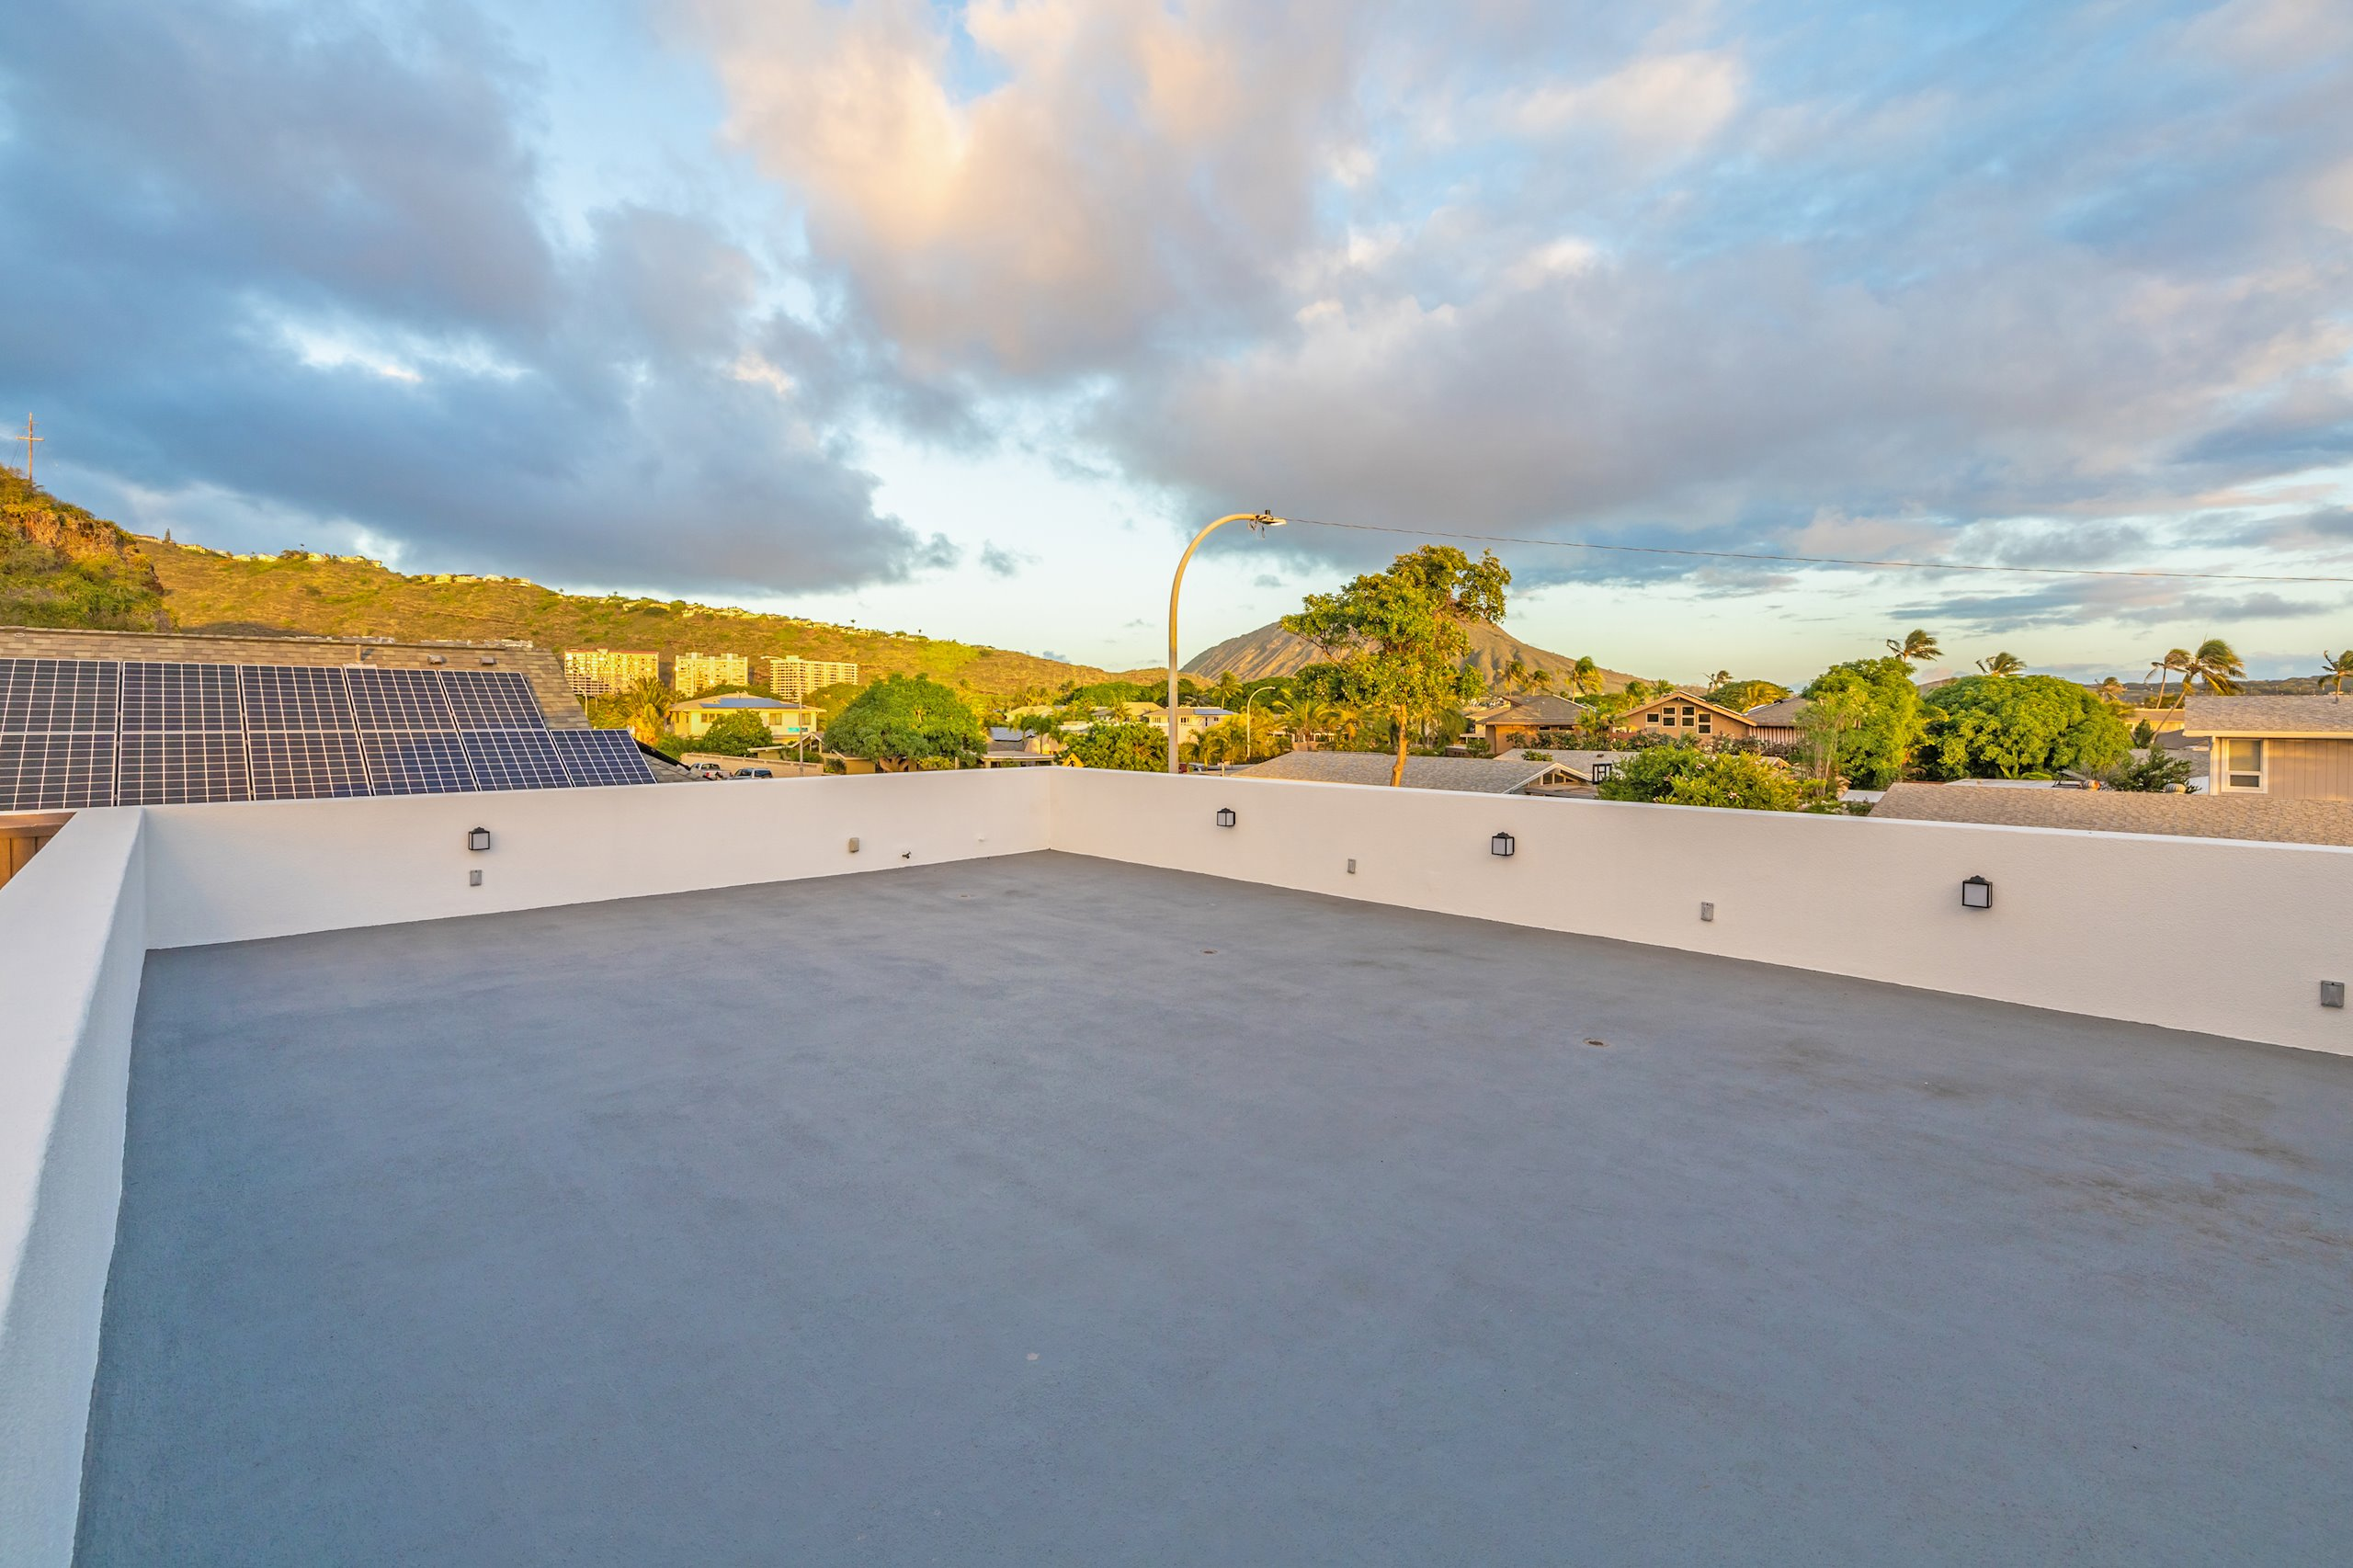 Open area roof top for relaxing, workouts, yoga, or star gazing at night.